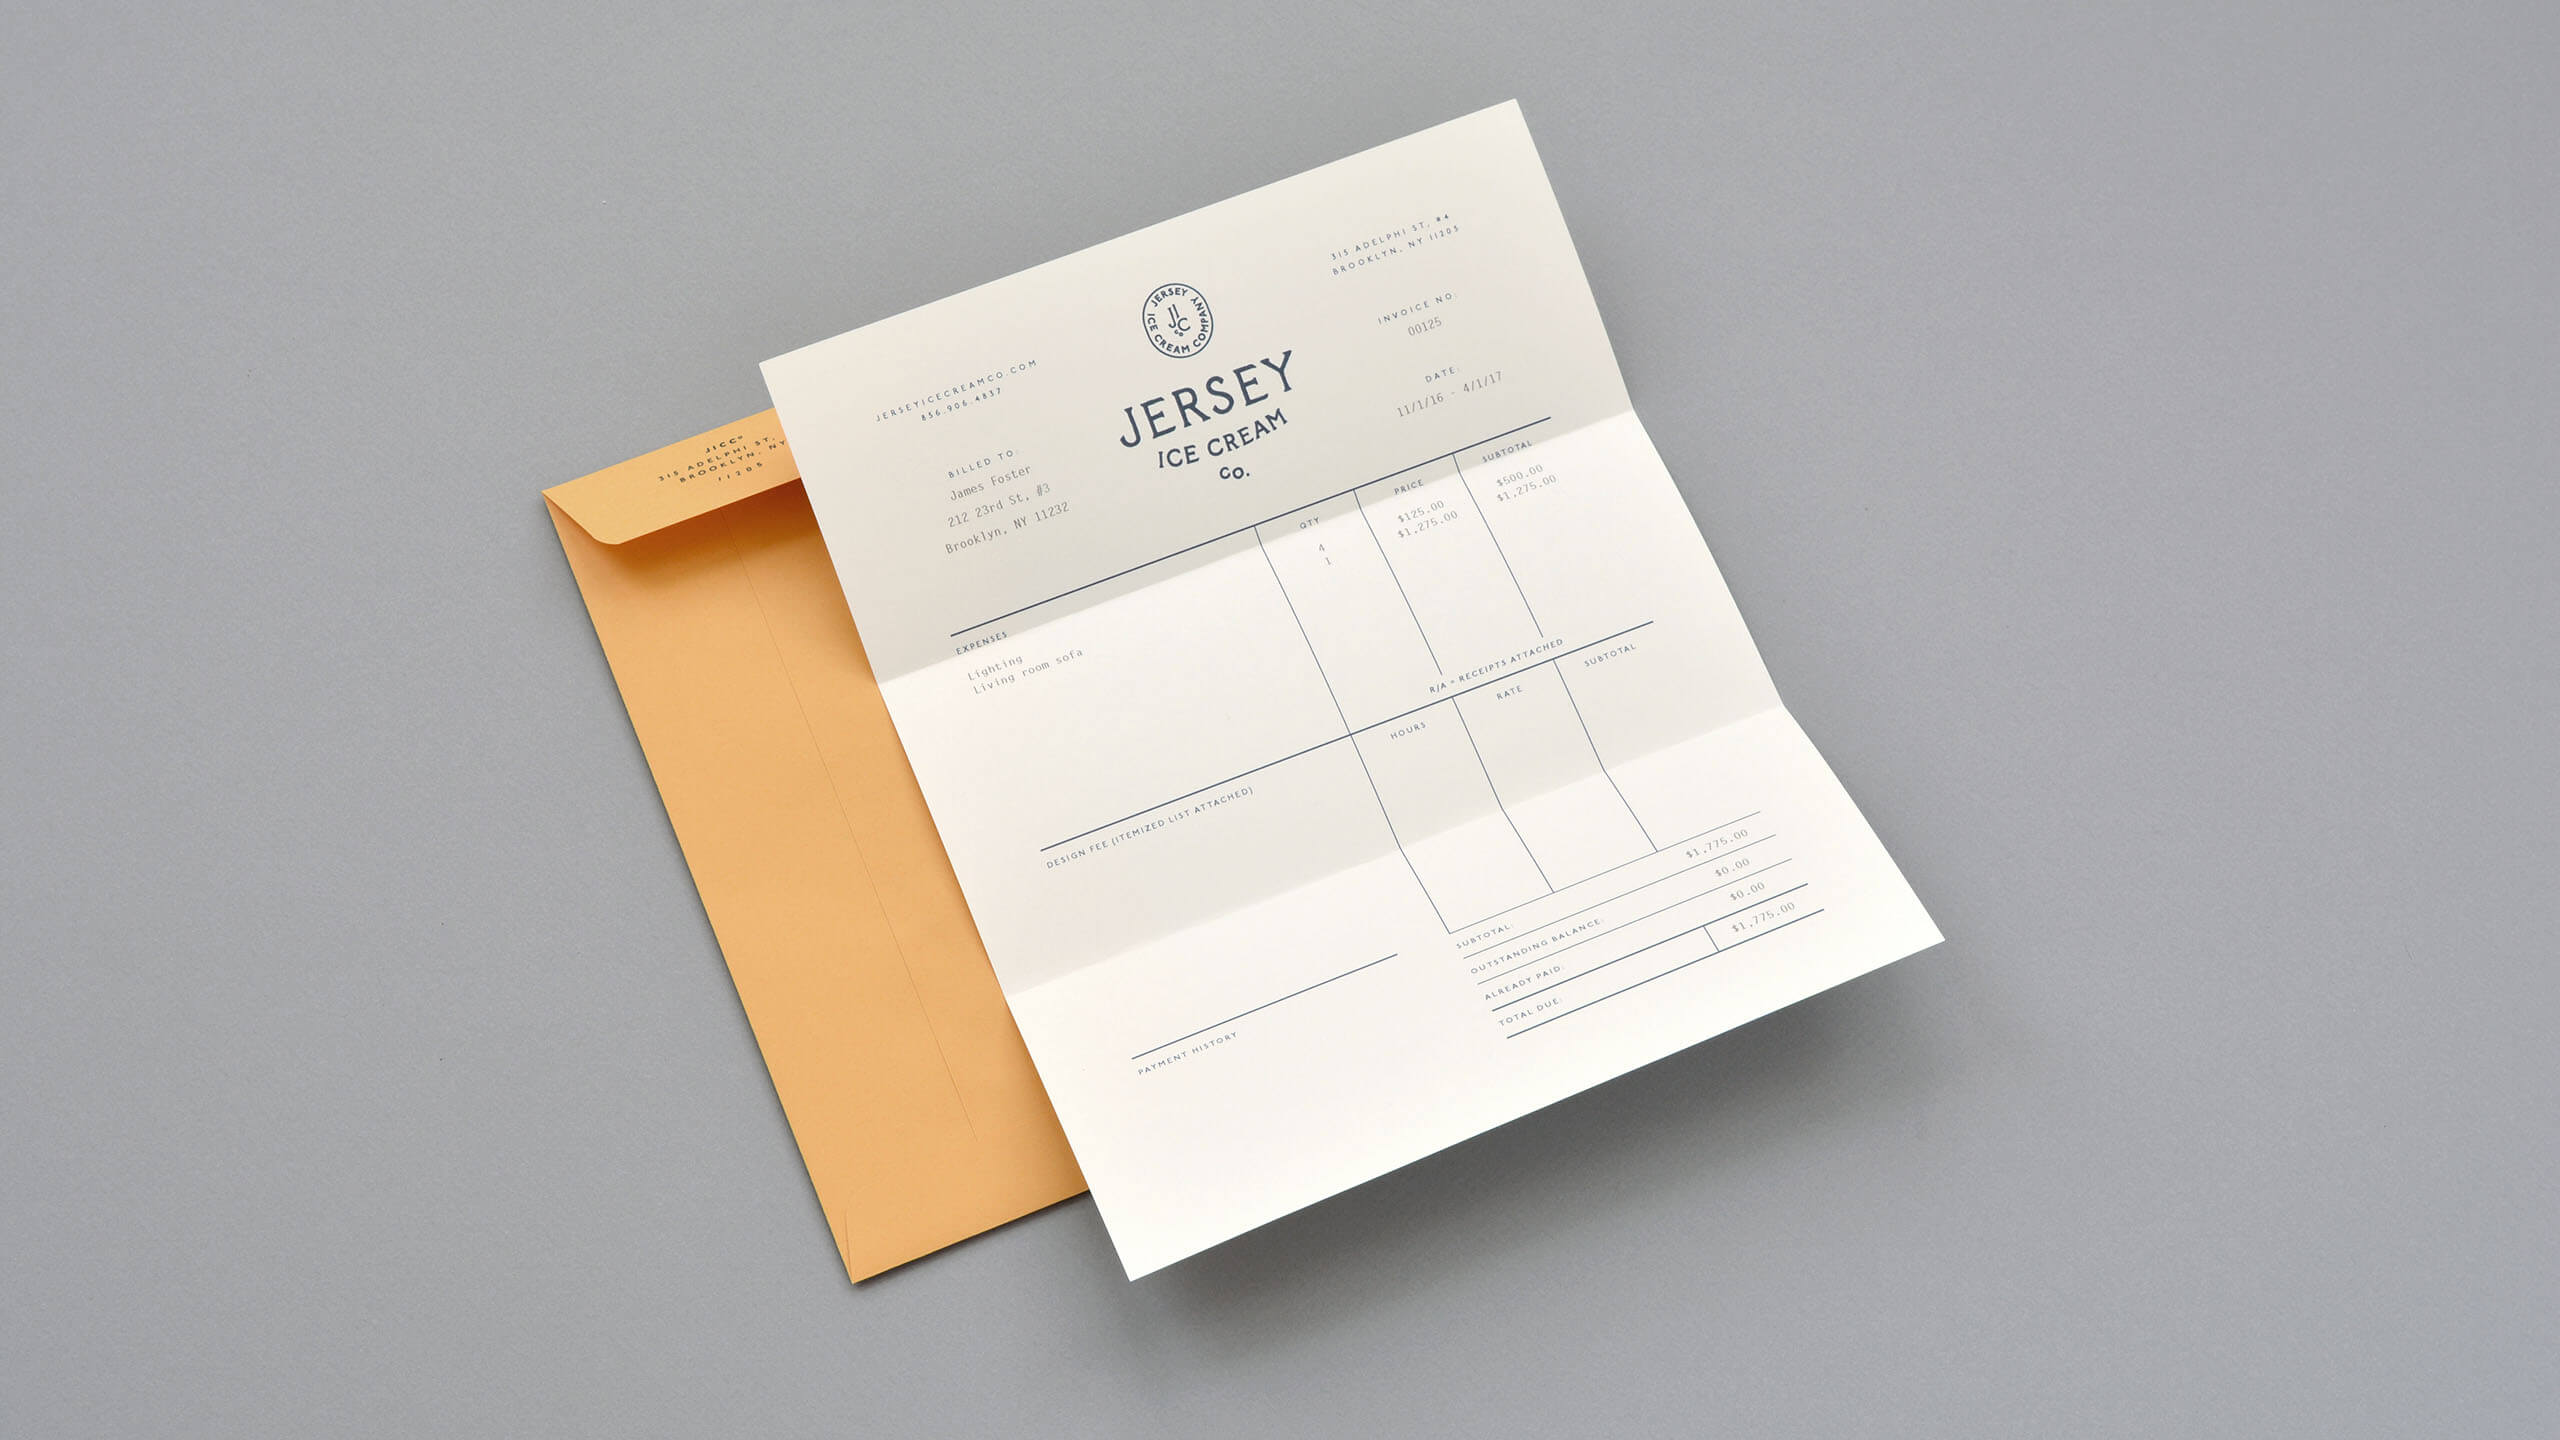 Printable Sales Invoice Word Bueno  Jersey Ice Cream Co Project Management Invoicing Pdf with Free Invoice Service Buenoworkjerseyicecreamcoinvoice Chicken Receipt Word